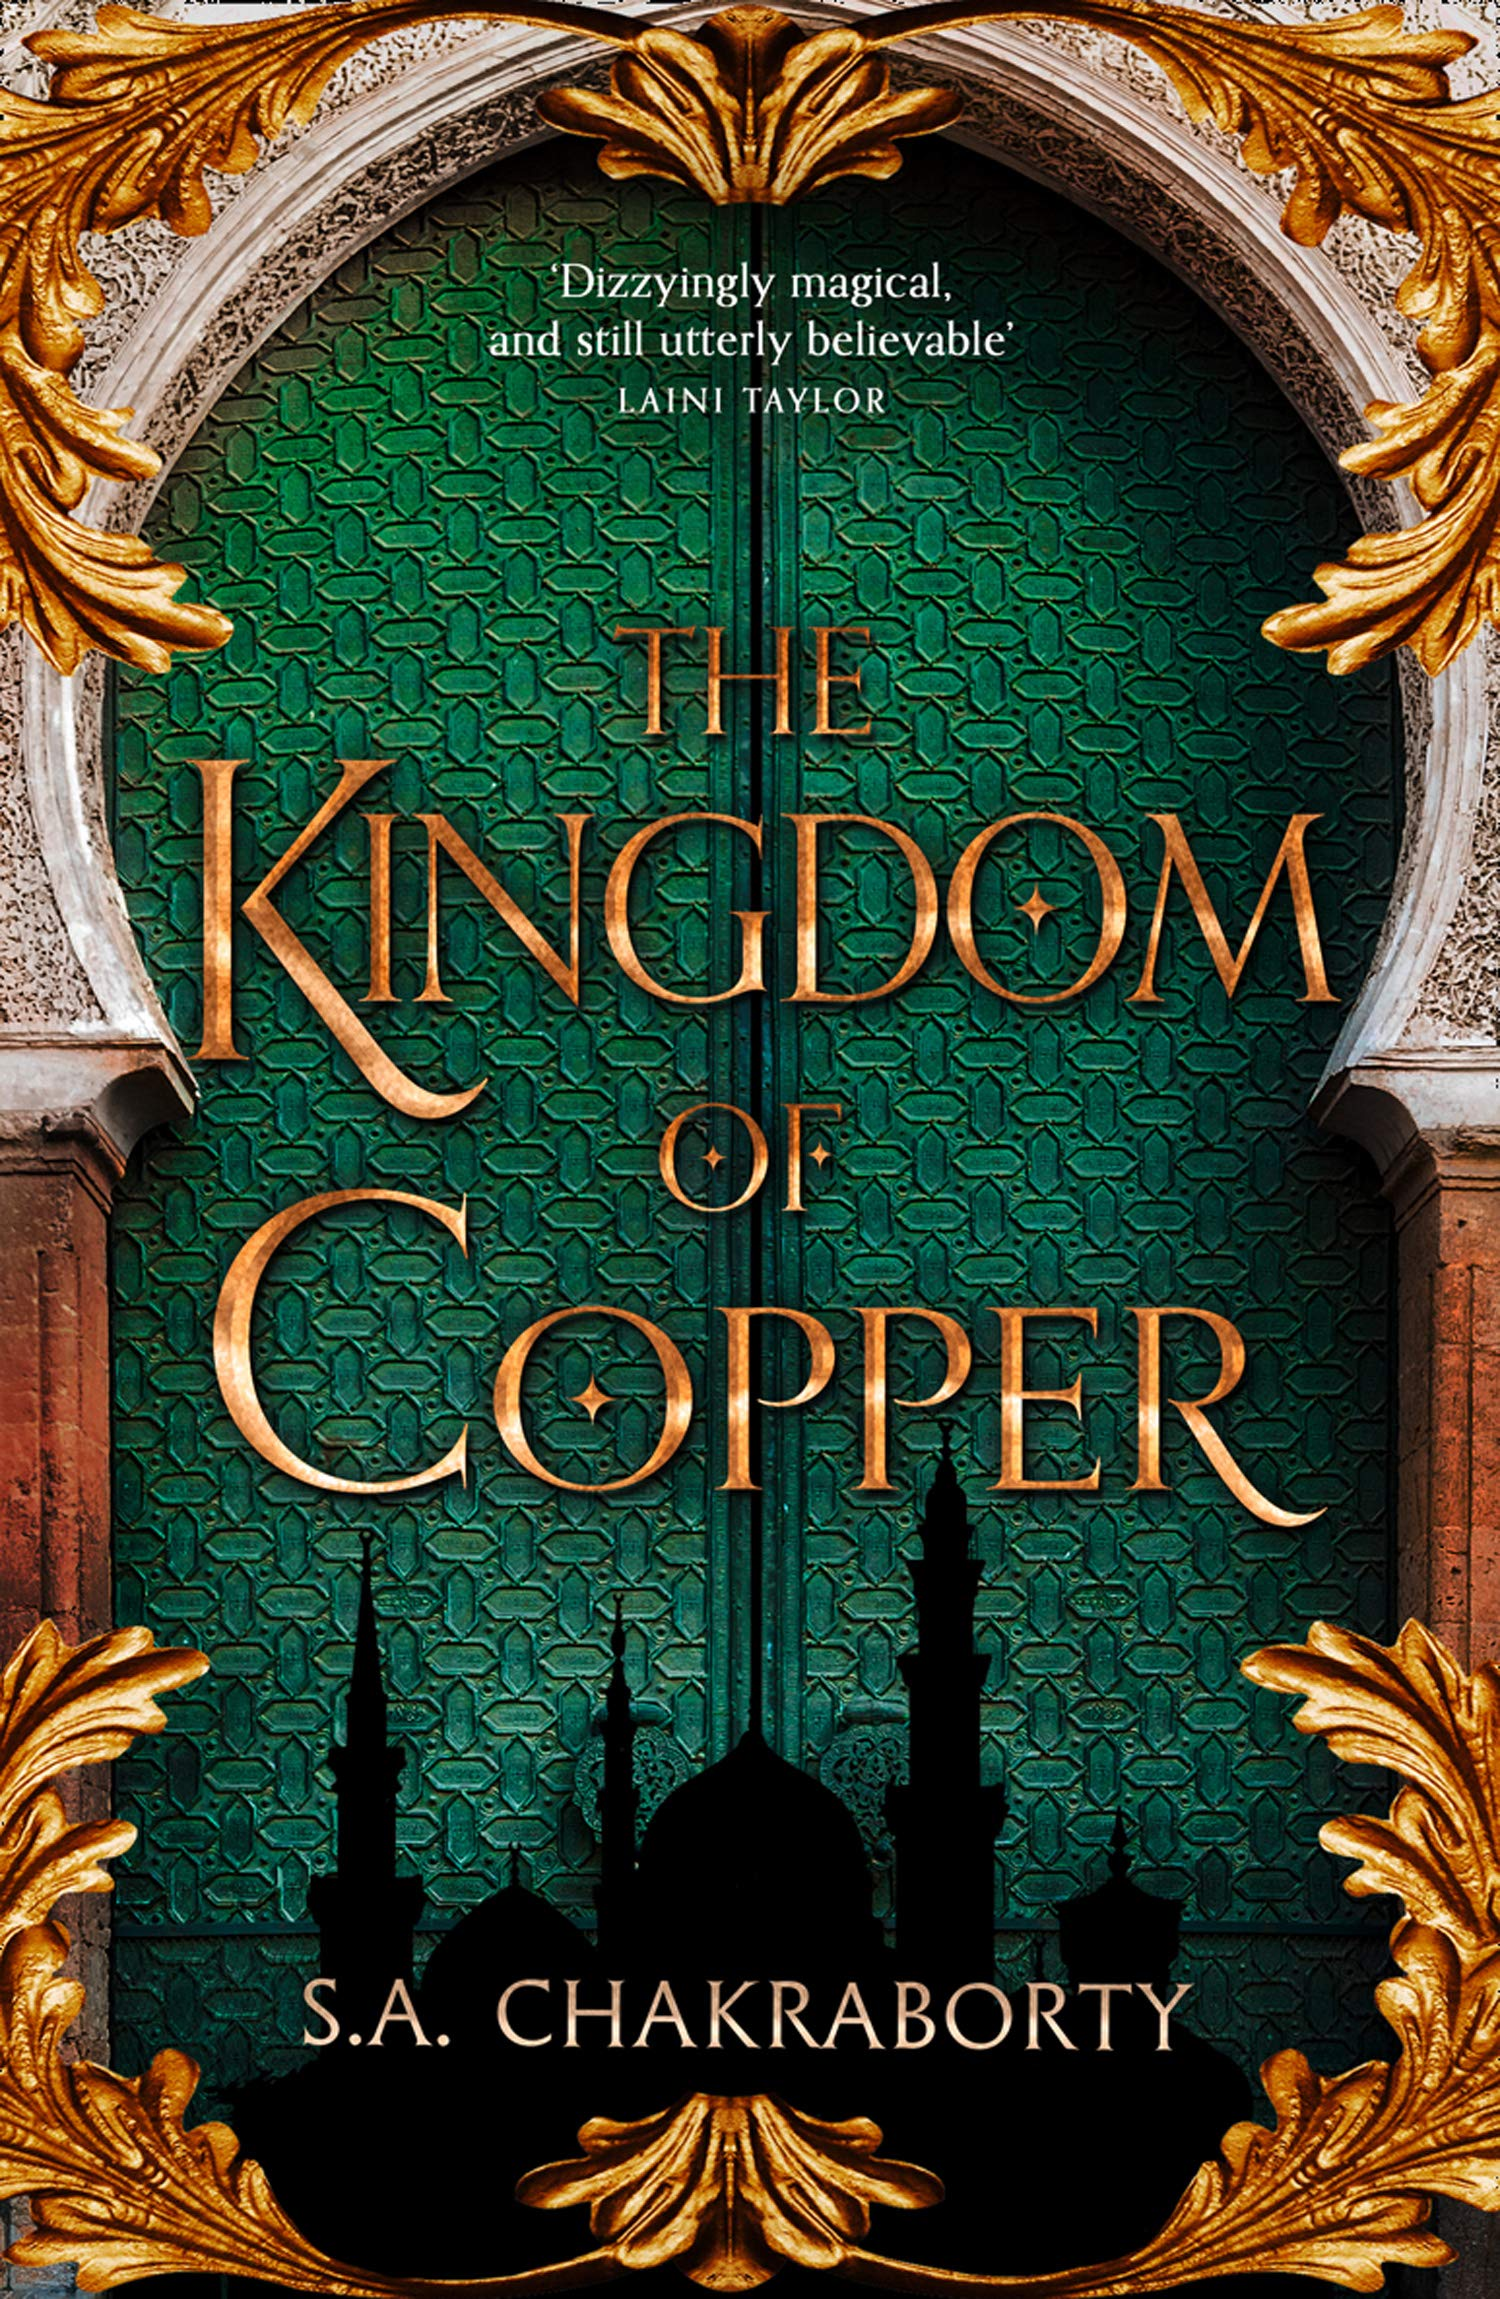 The Kingdom of Copper (The Daevabad Trilogy, Book 2): Amazon.co.uk ...